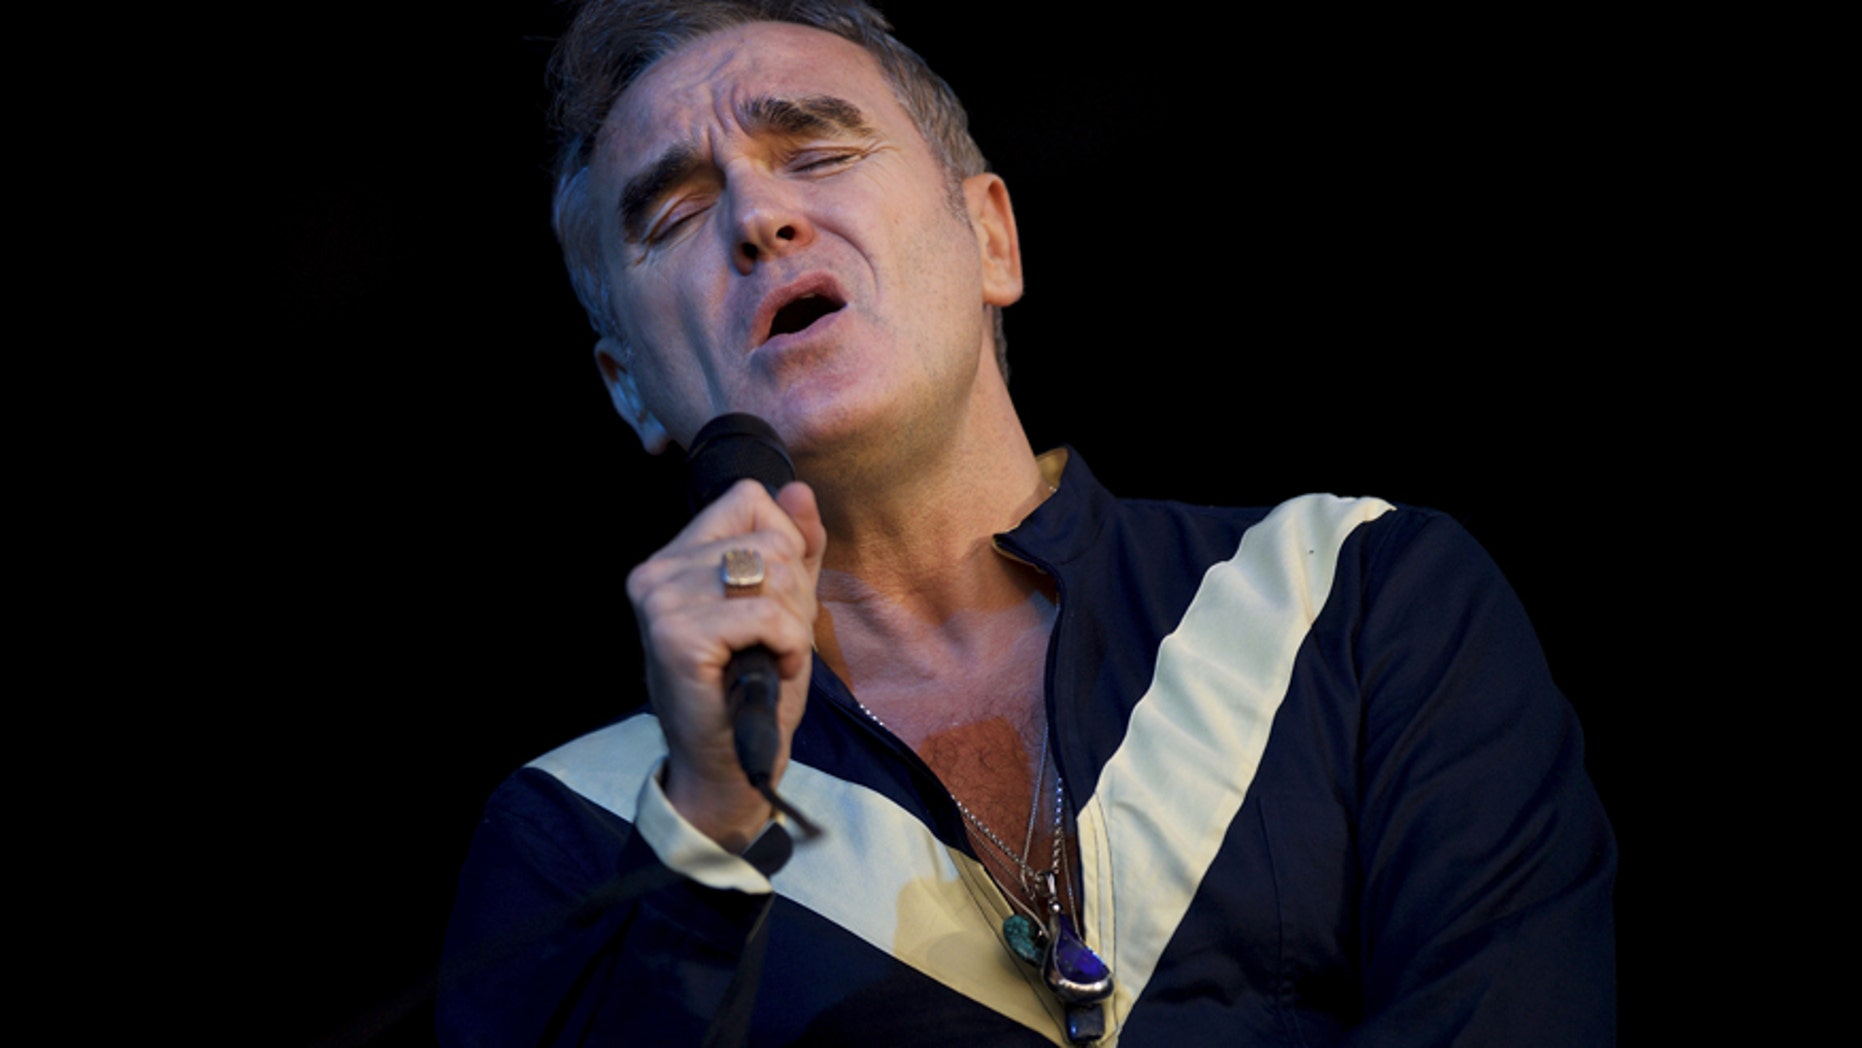 Morrissey Appears To Be Punched After Fans Rush Stage During Concert